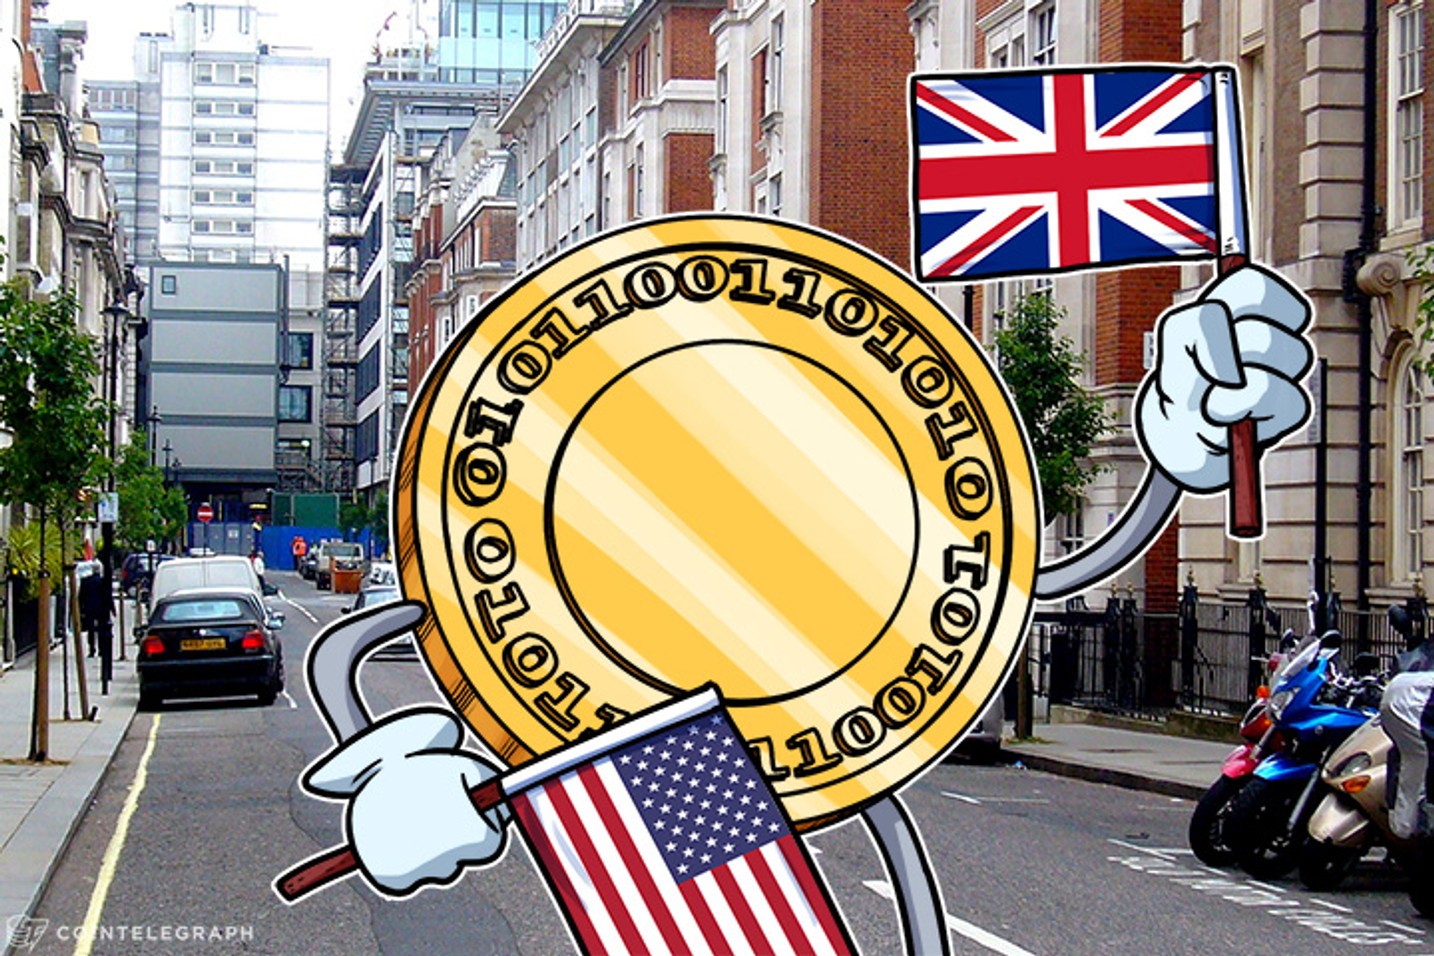 UK vs. US: Liberalization of Fintech vs. More Regulation